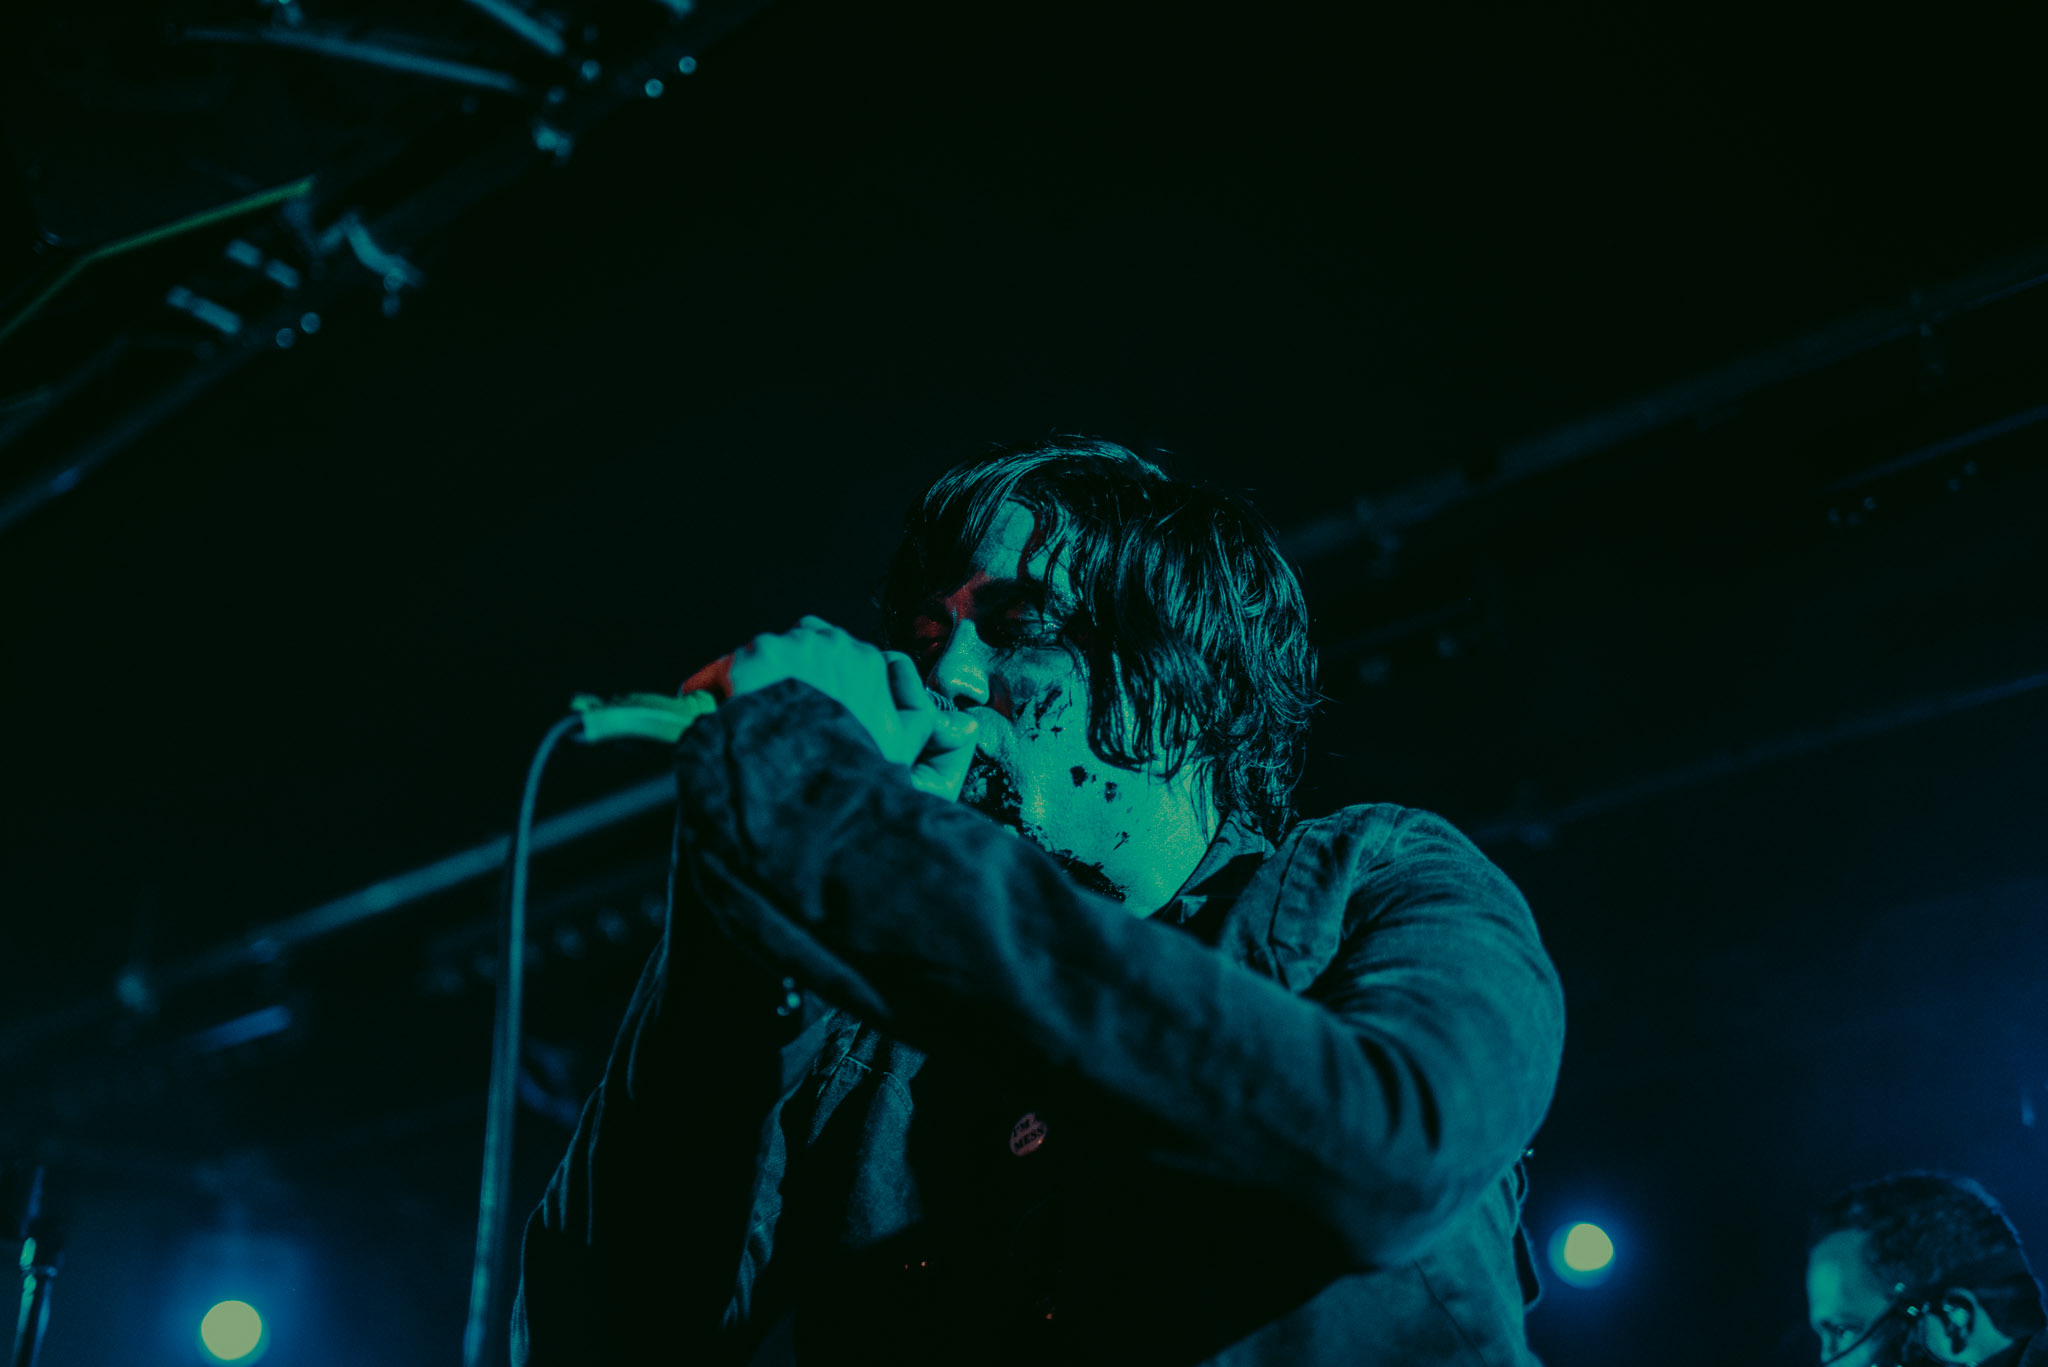 20171031-SLEEPING WITH SIRENS-0268- @arnecrdnls.jpg